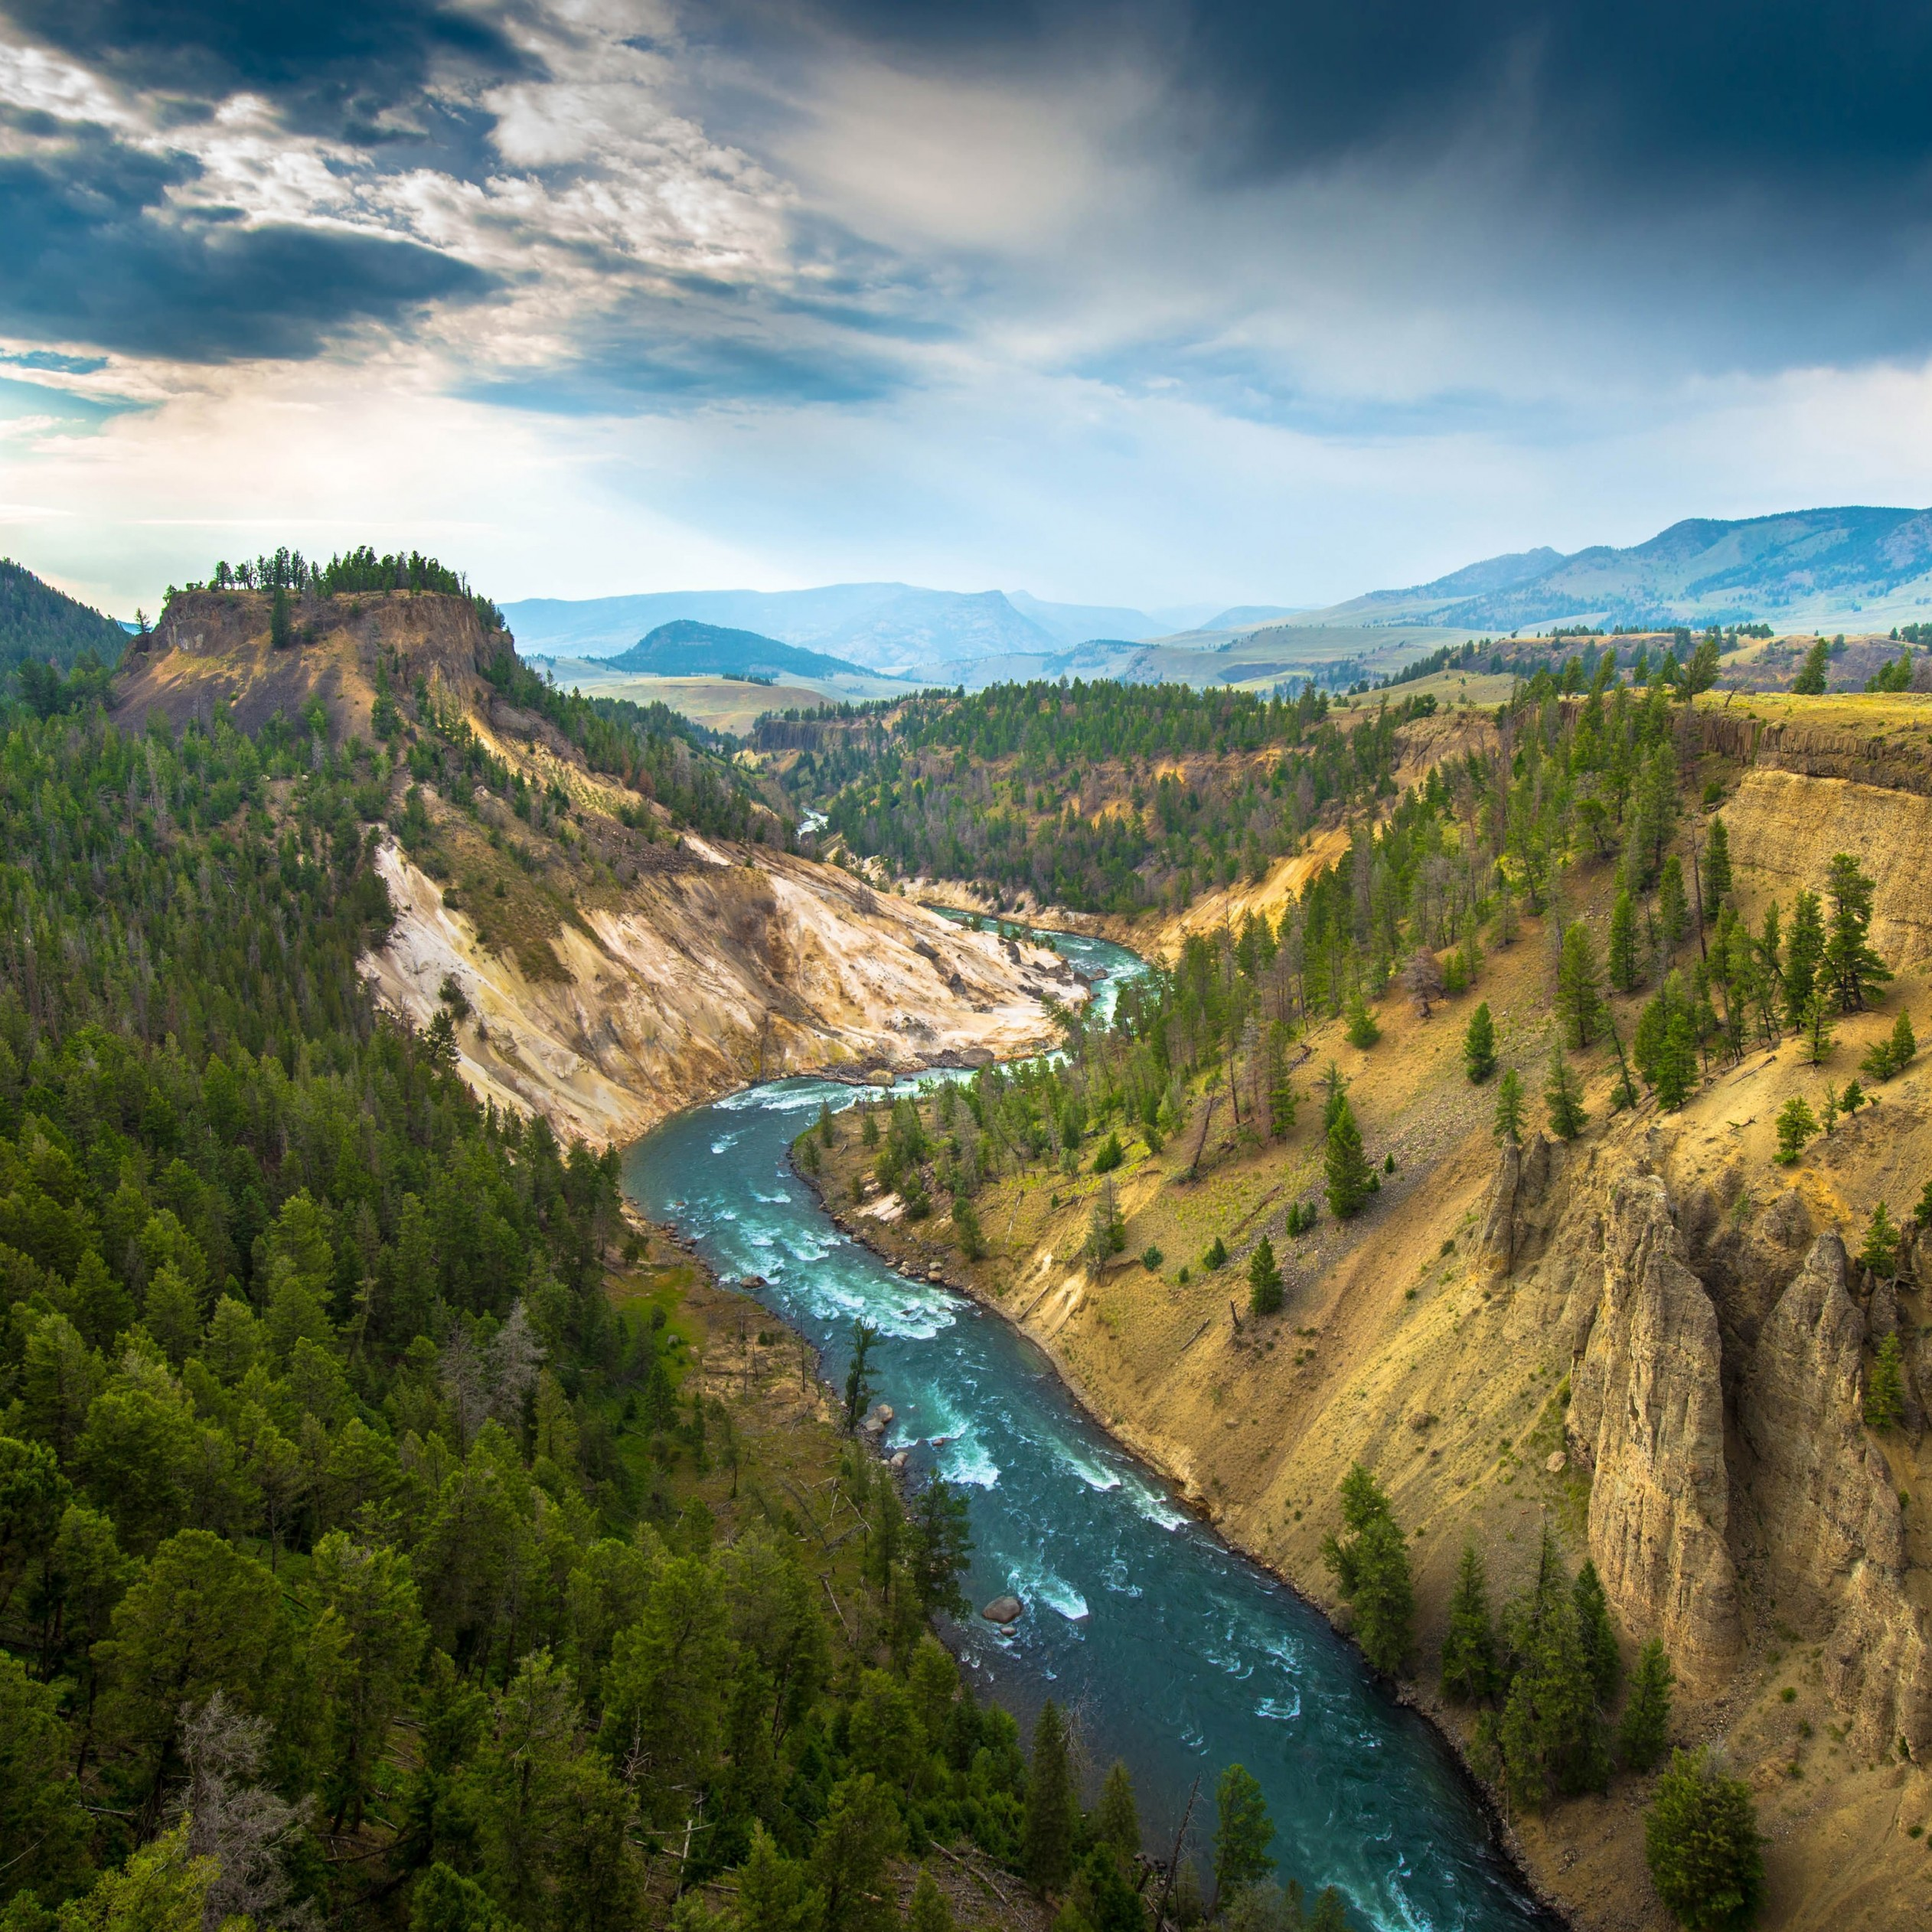 The River, Grand Canyon of Yellowstone National Park, USA Wallpaper for Apple iPad 3